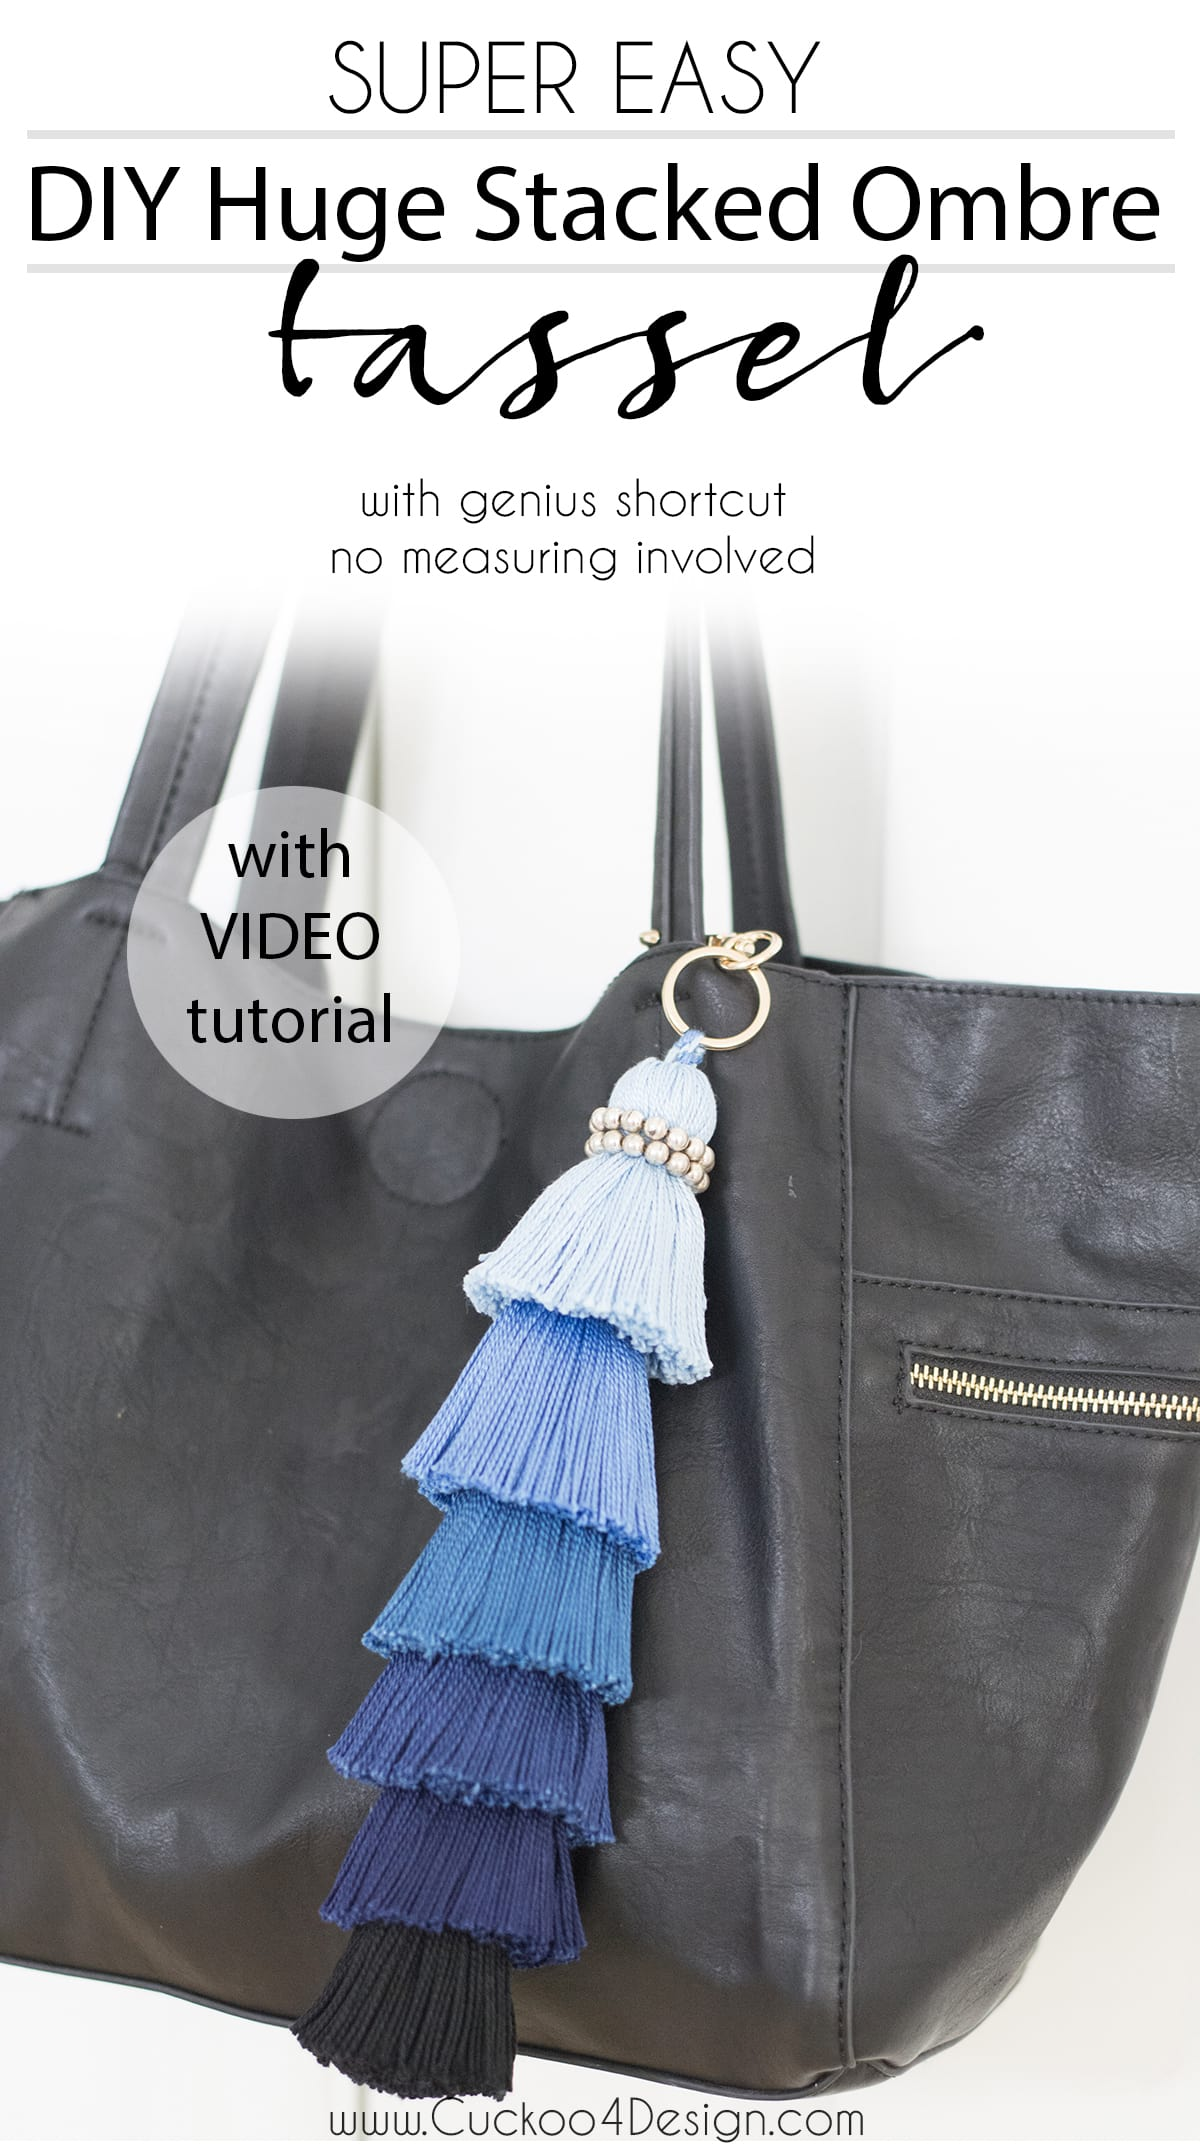 DIY huge stacked ombre tassel with genius shortcut. No measuring involved!